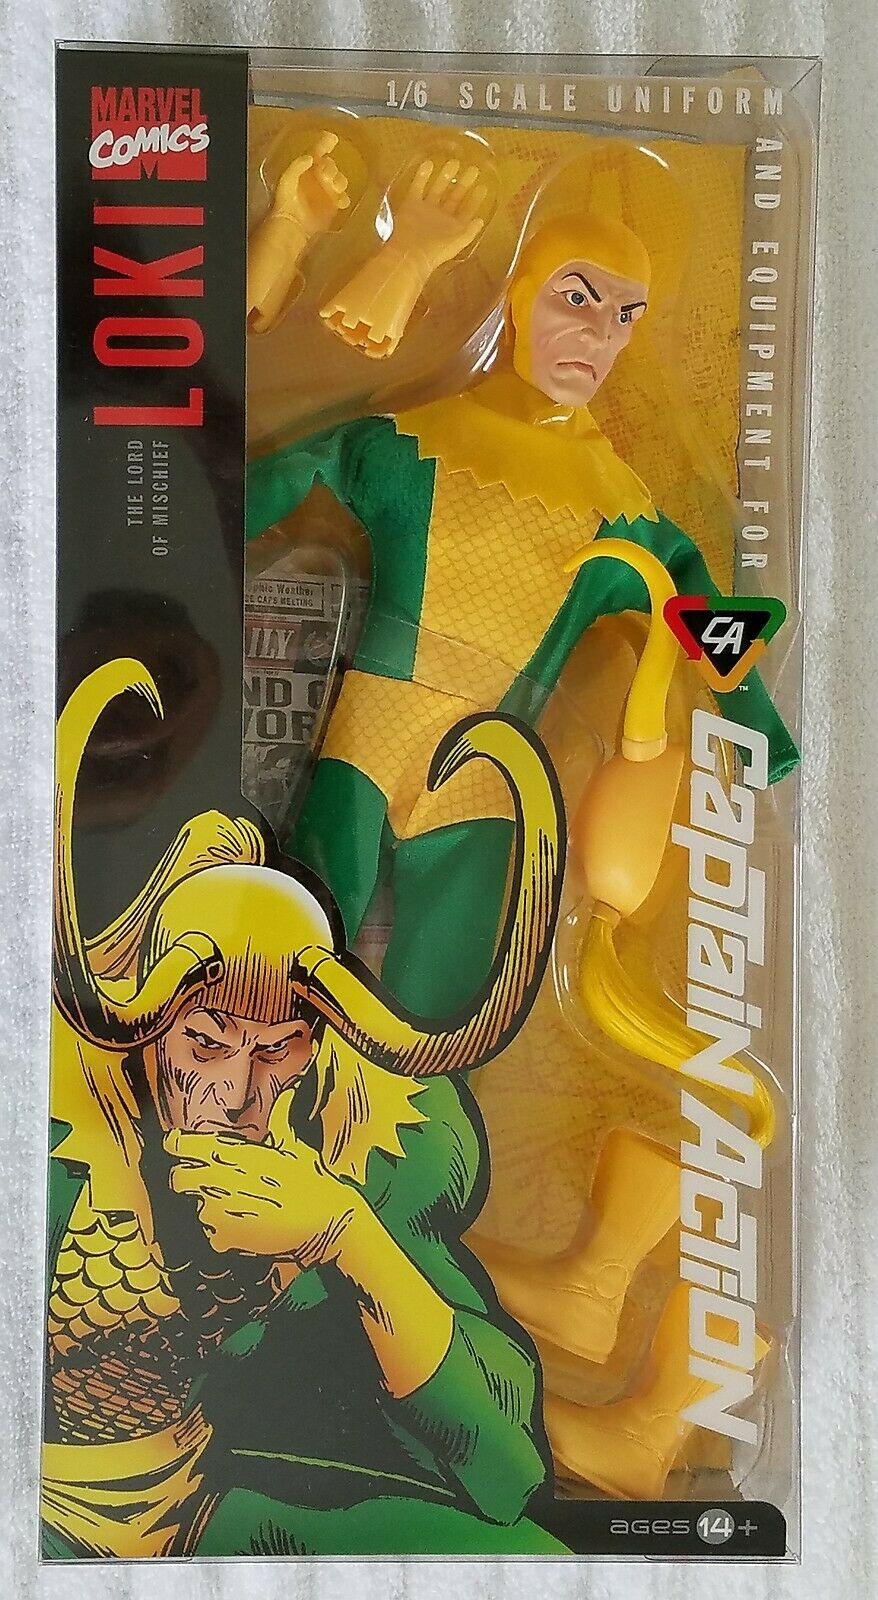 CAPTAIN ACTION DR. EVIL AS LOKI ARCH ENEMY OF THE MIGHTY THOR UNIFORM & EQUIP